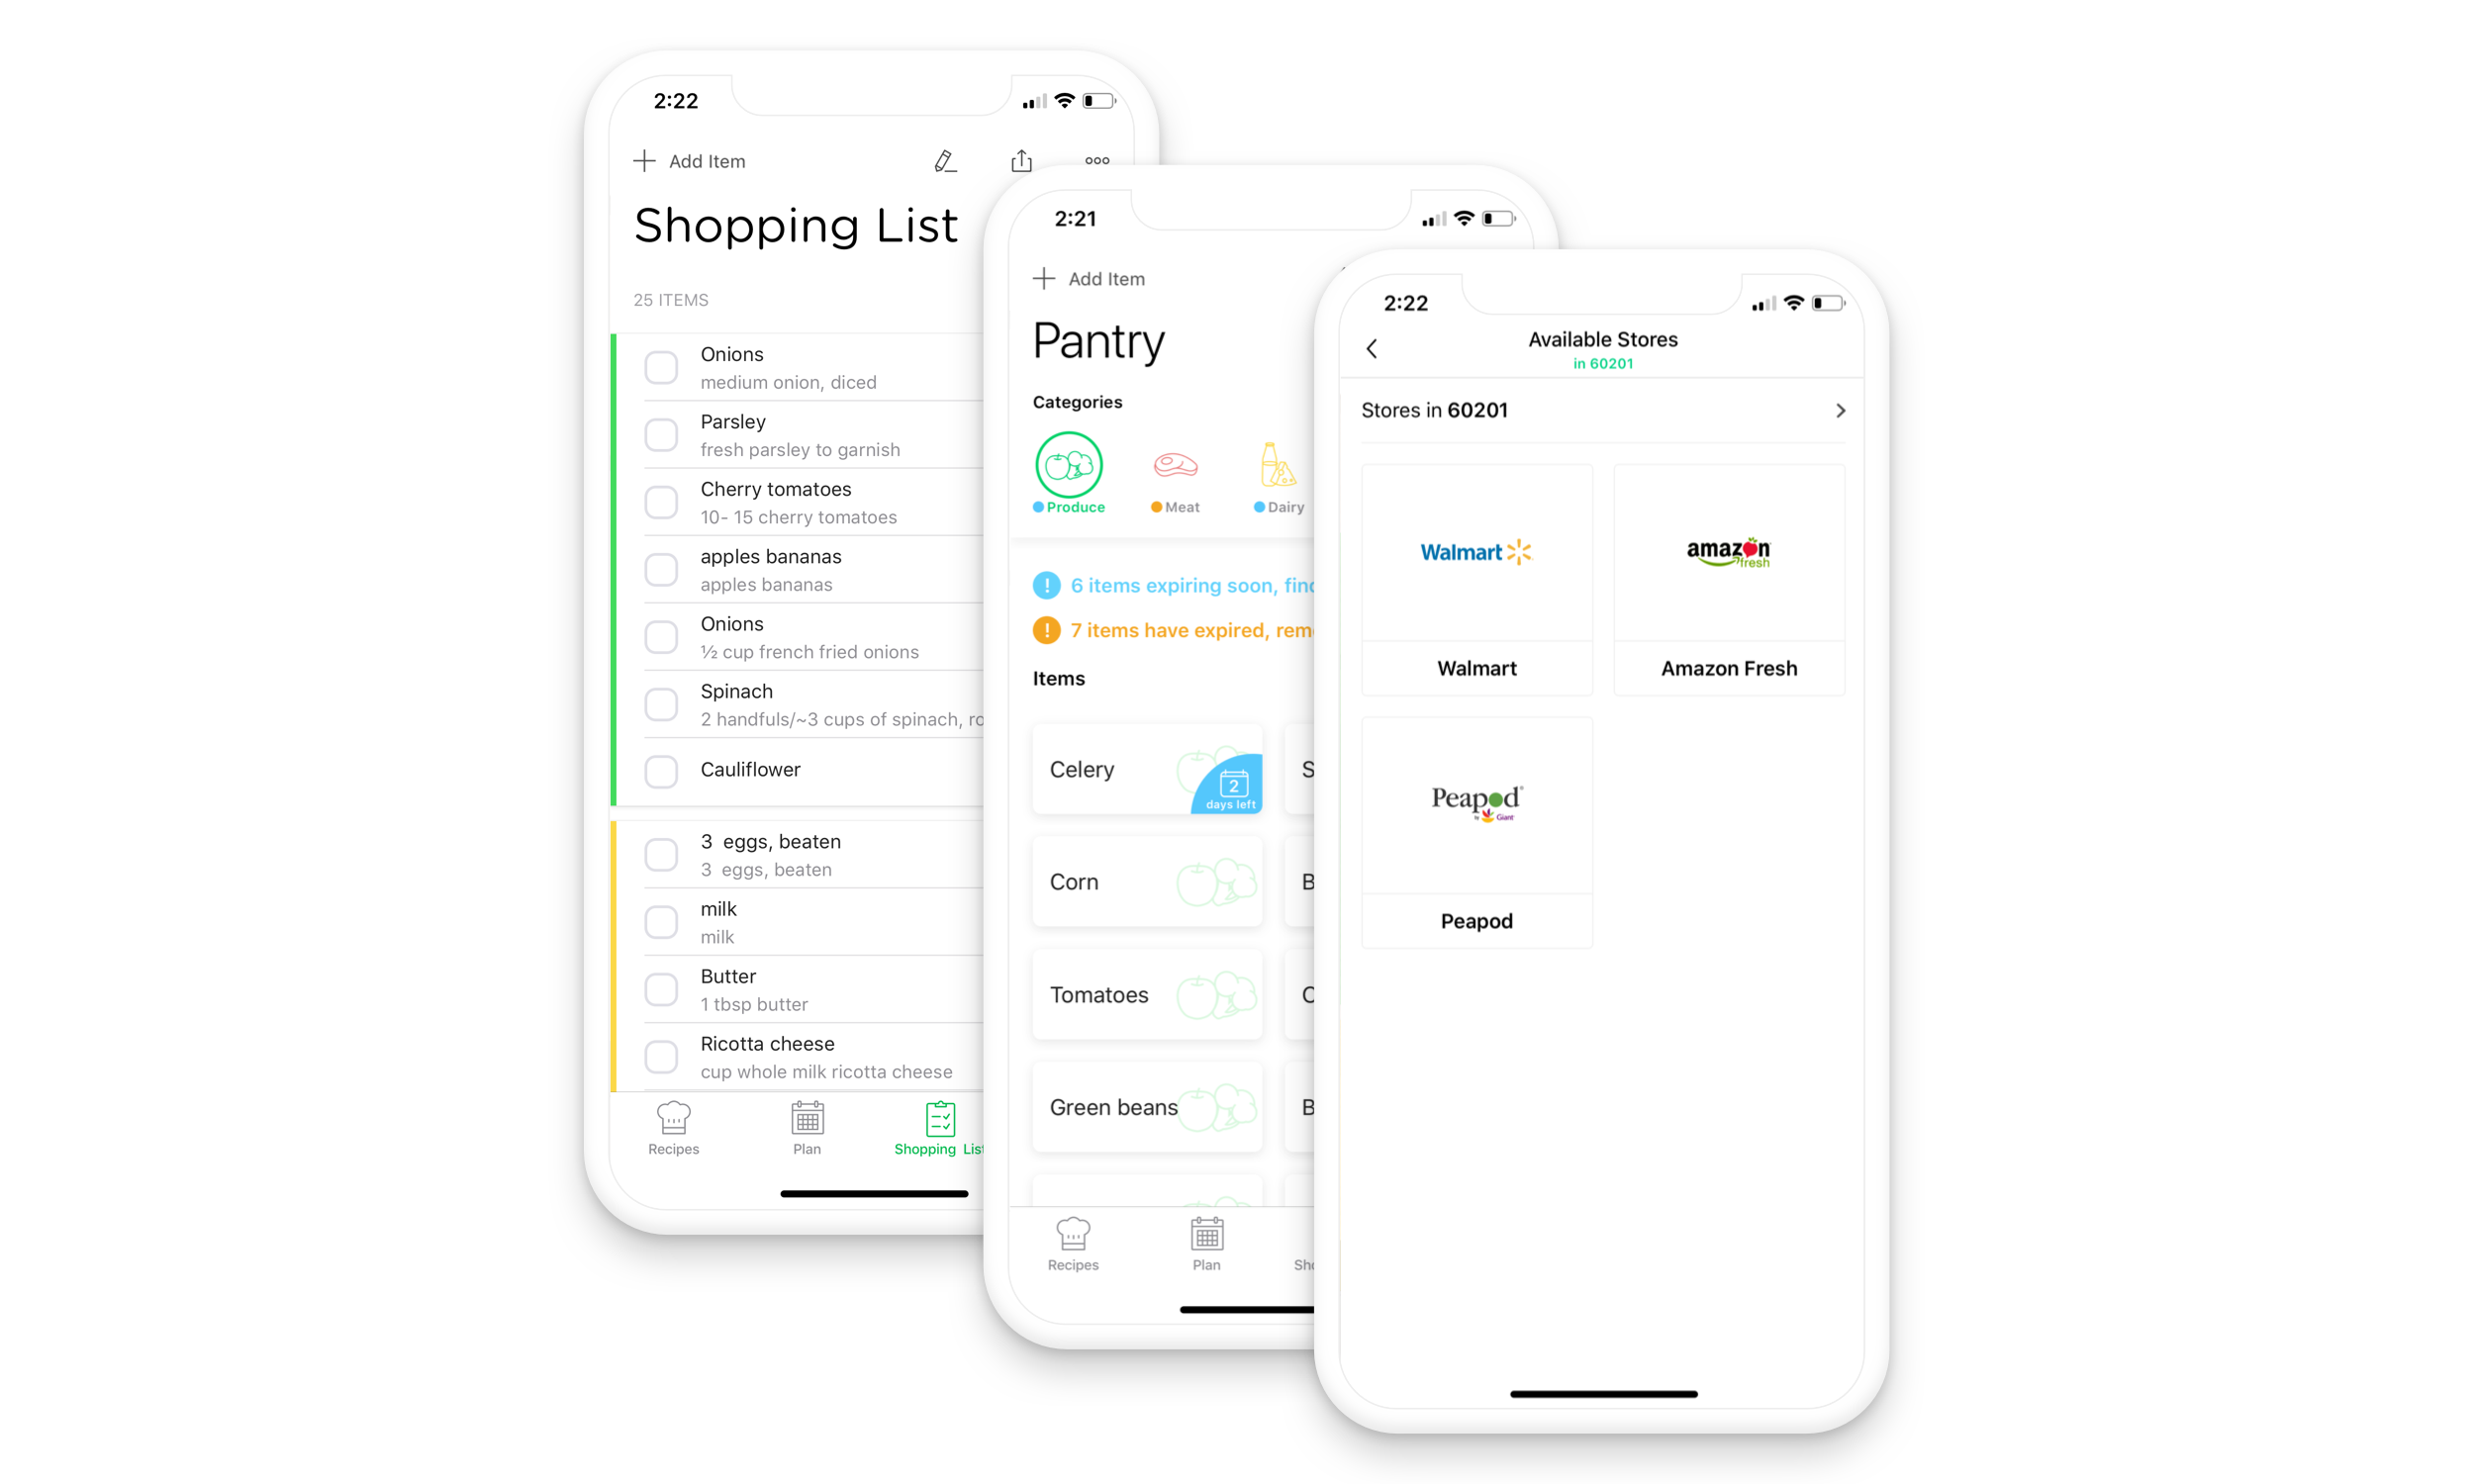 All your grocery needs in one place - Add missing ingredients to your shopping list with one touch. Chefling syncs your shopping list in real-time with family members to manage your shopping.